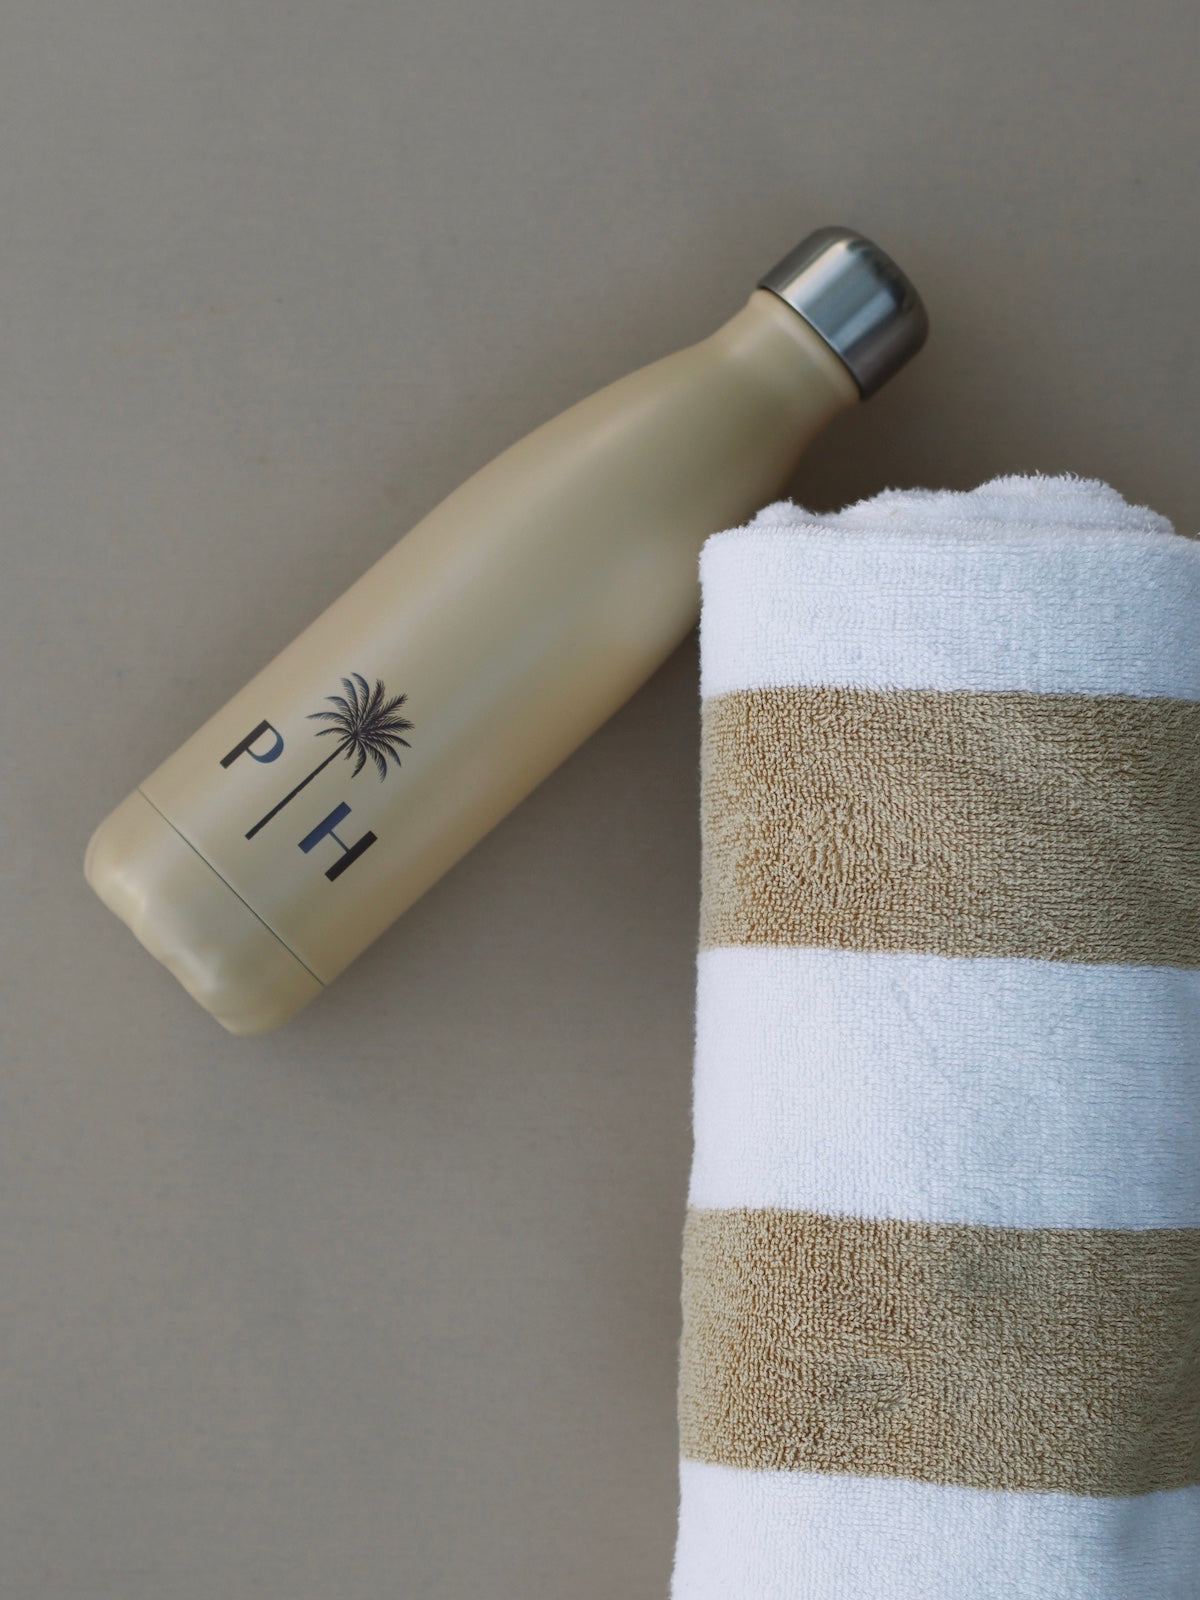 Palm Heights thermo bottle with beach towel